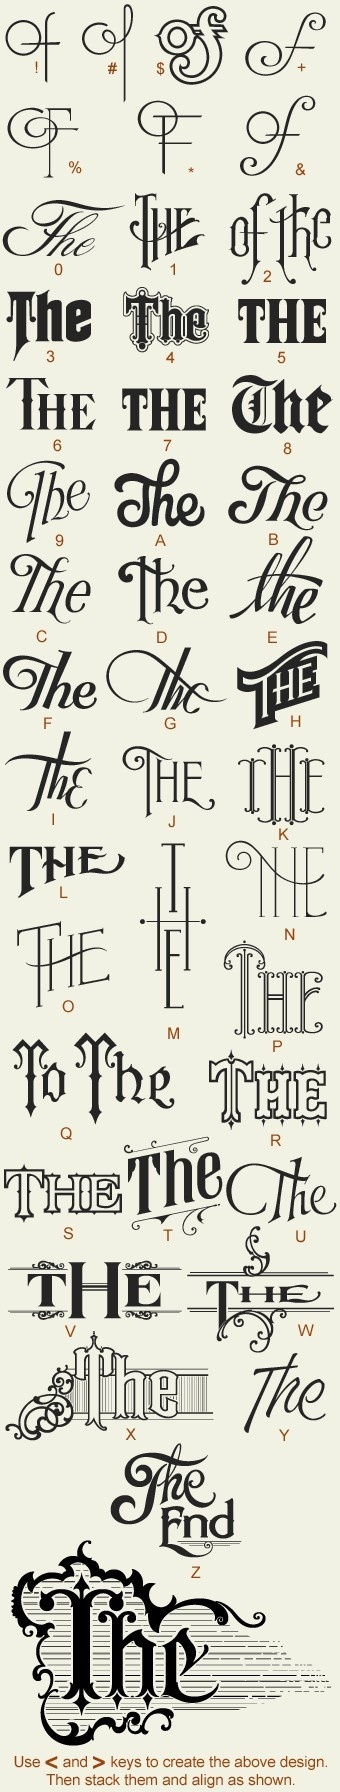 hand lettering variations